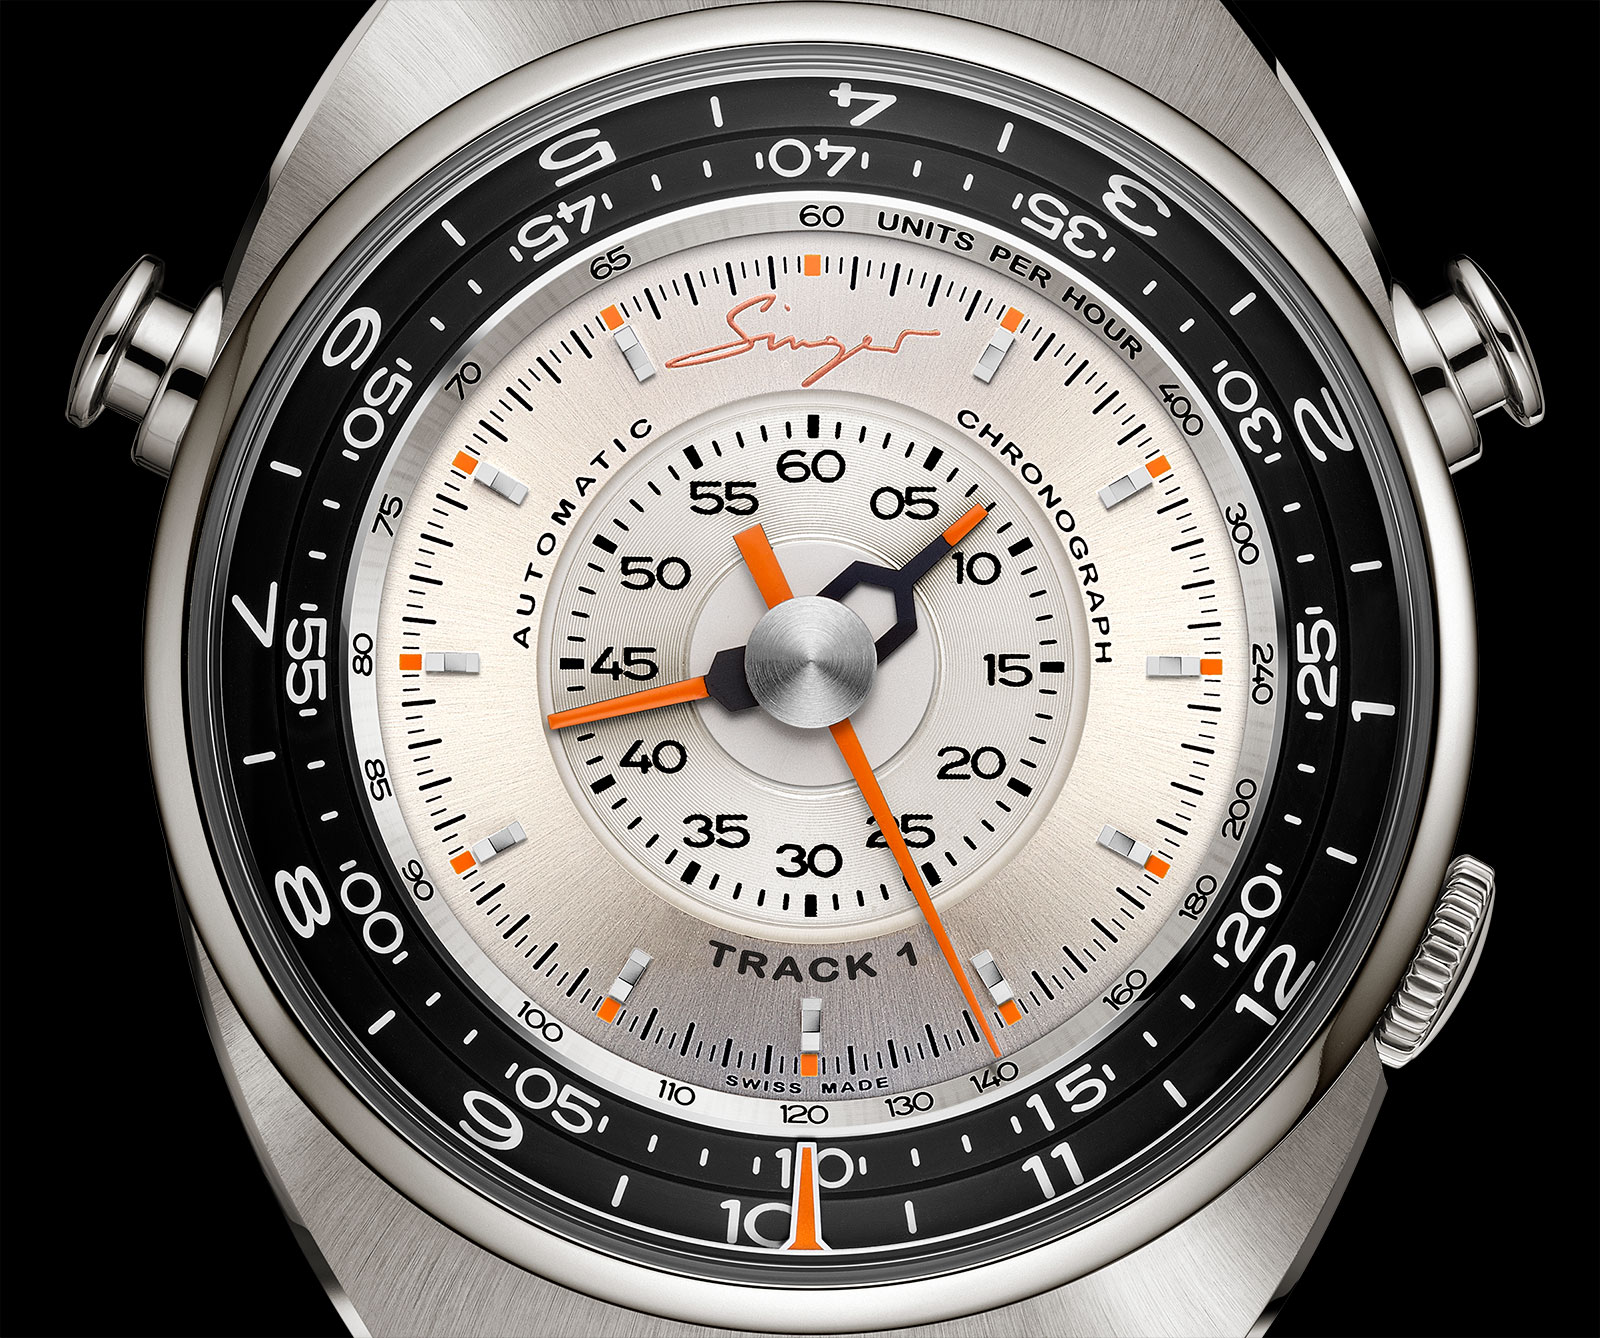 Singer Track 1 Chronograph Watch 5